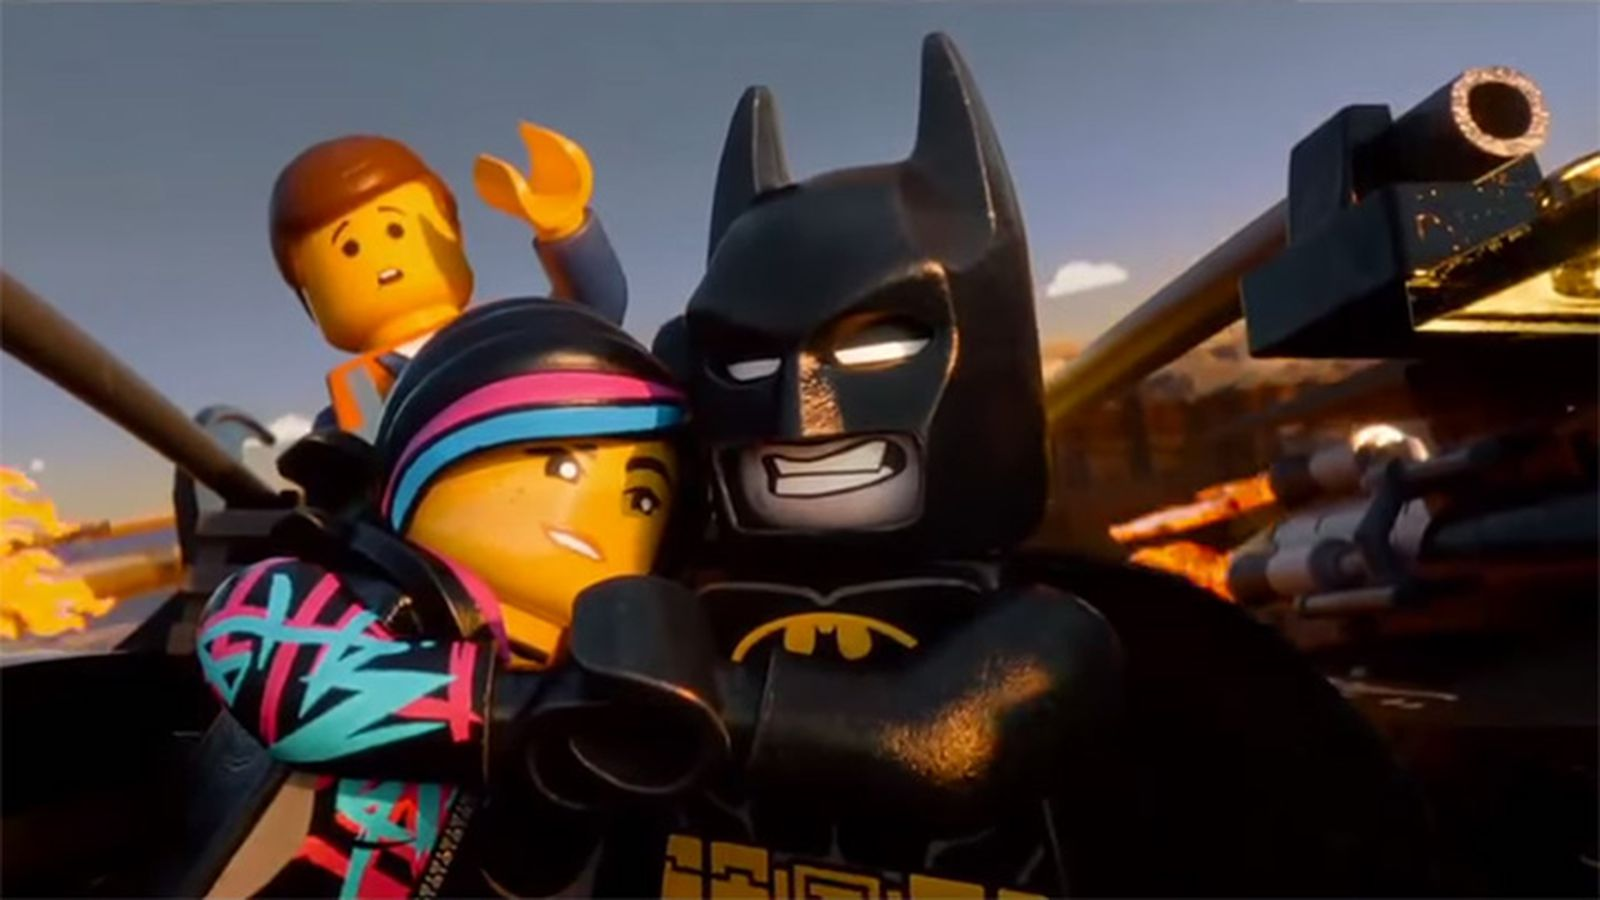 Lego and Harry Potter spinoff movies scheduled from 2016